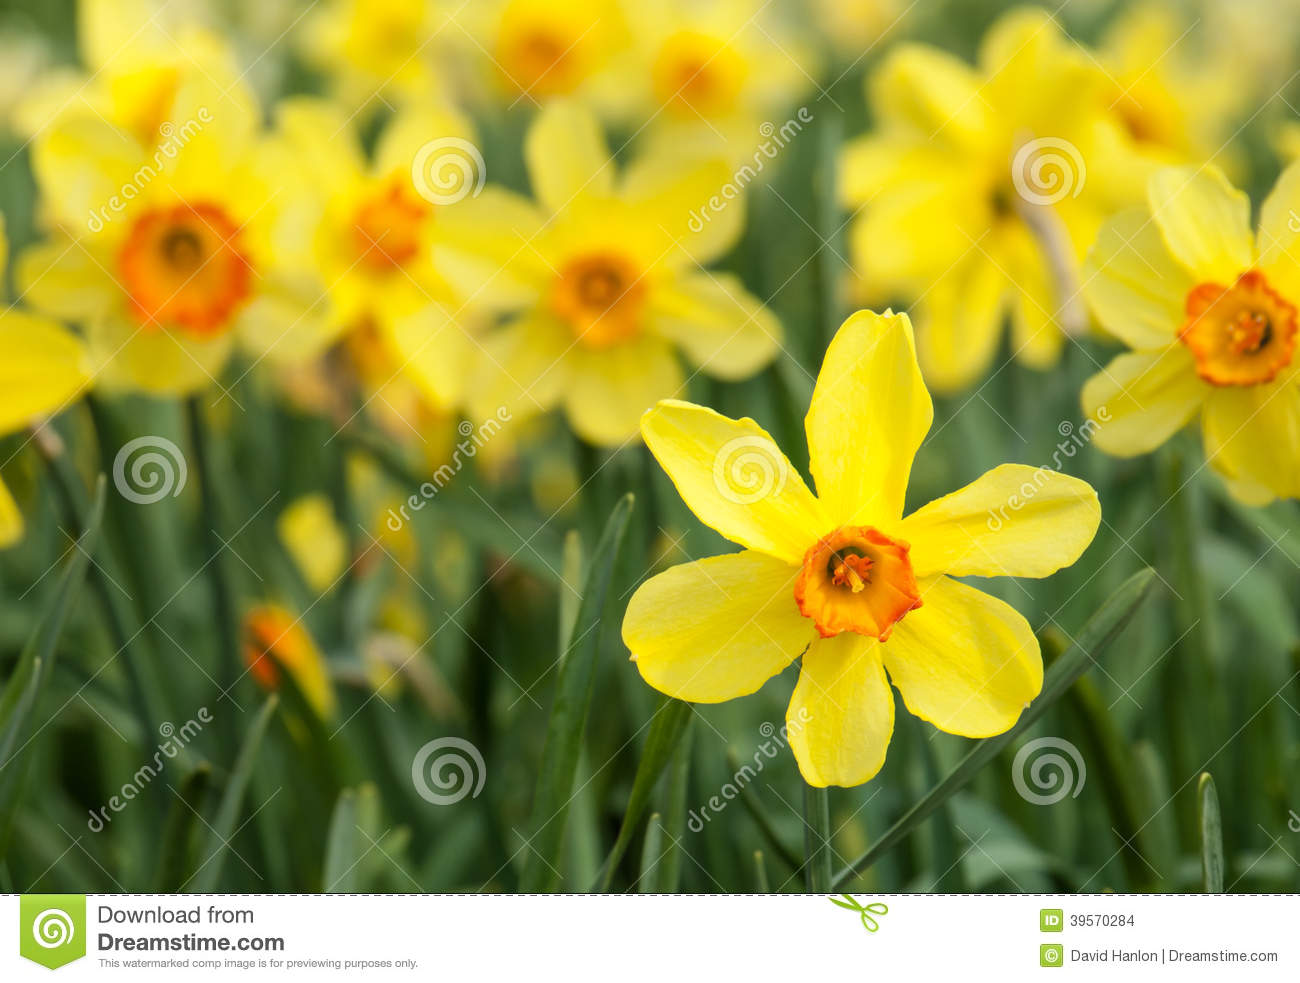 Yellow Trumpet Daffodils In A Daffodil Field Stock Photo Image Of